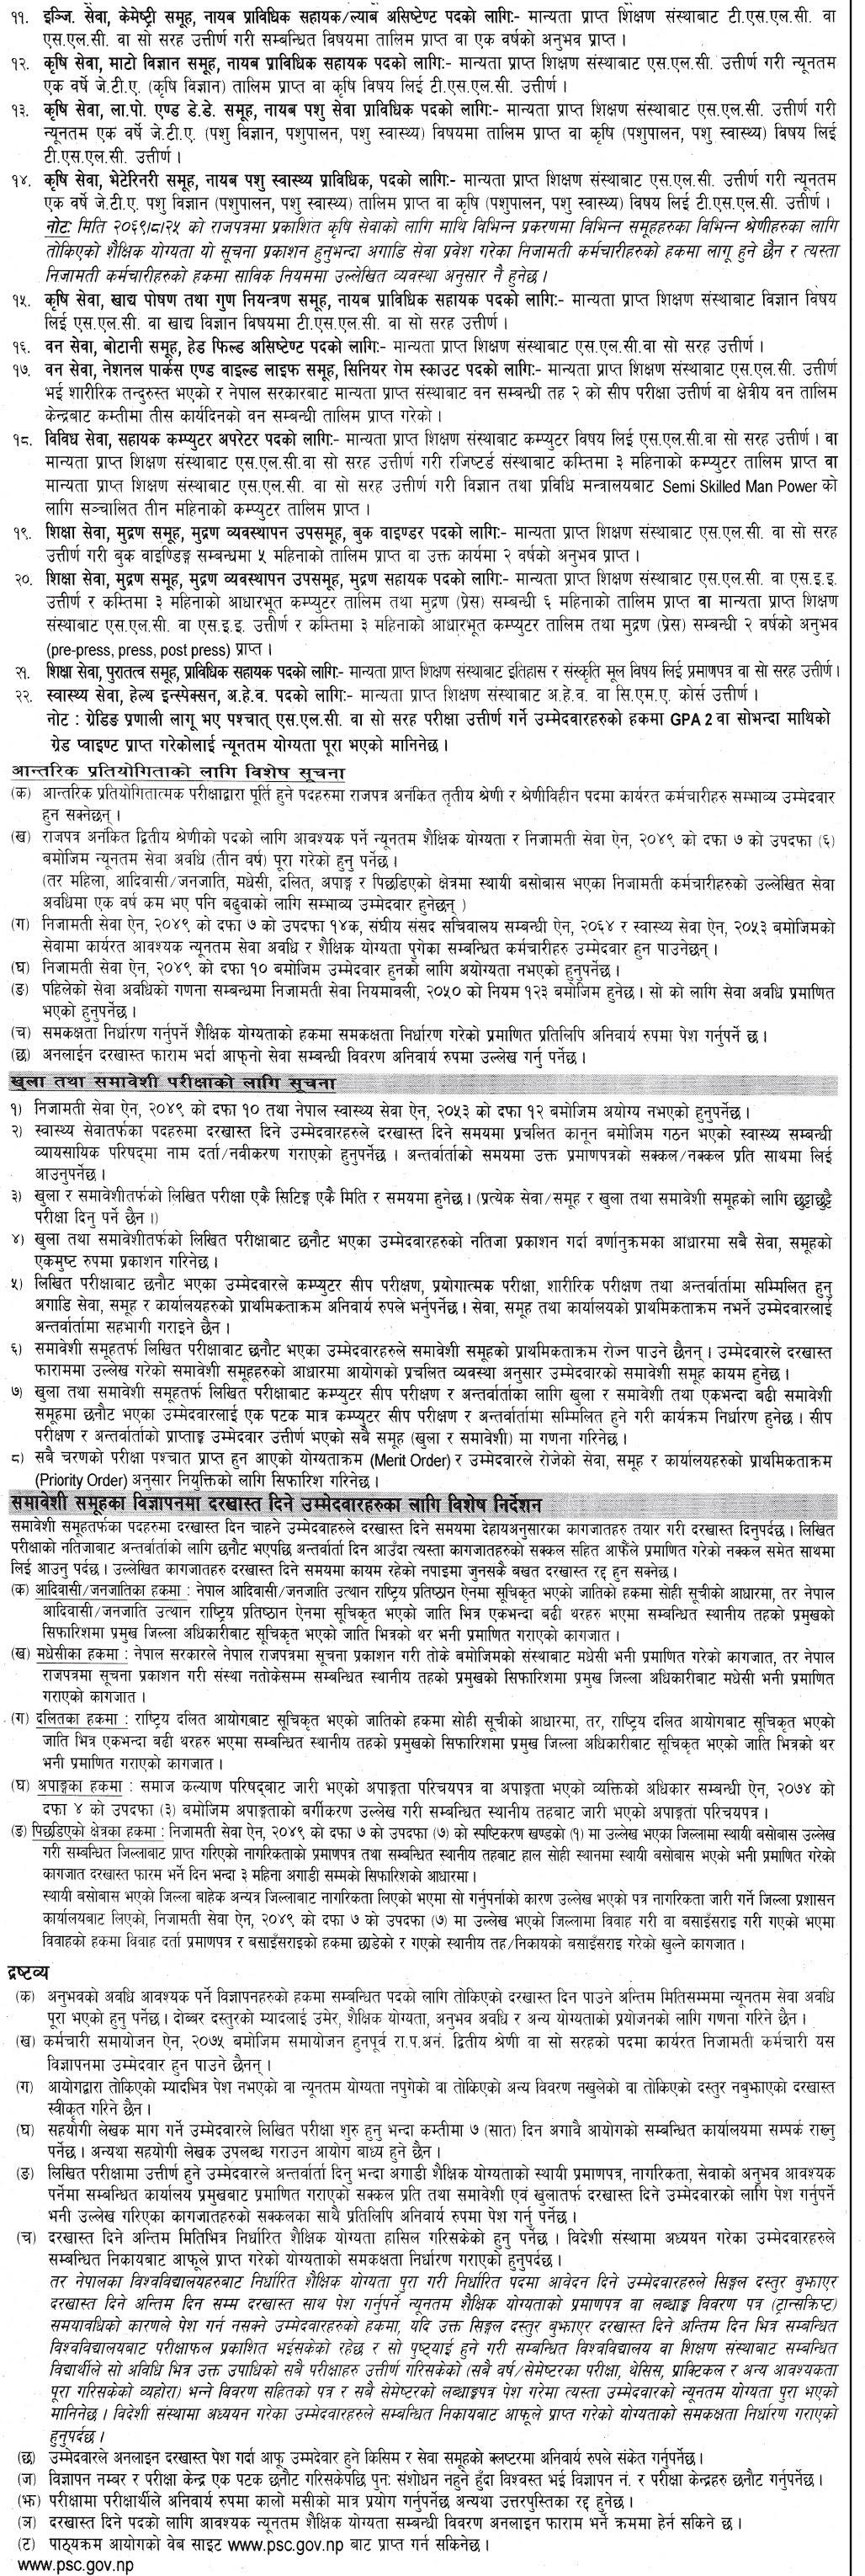 Vacancies For Non Gazetted Second Class Technical And Health Level 4